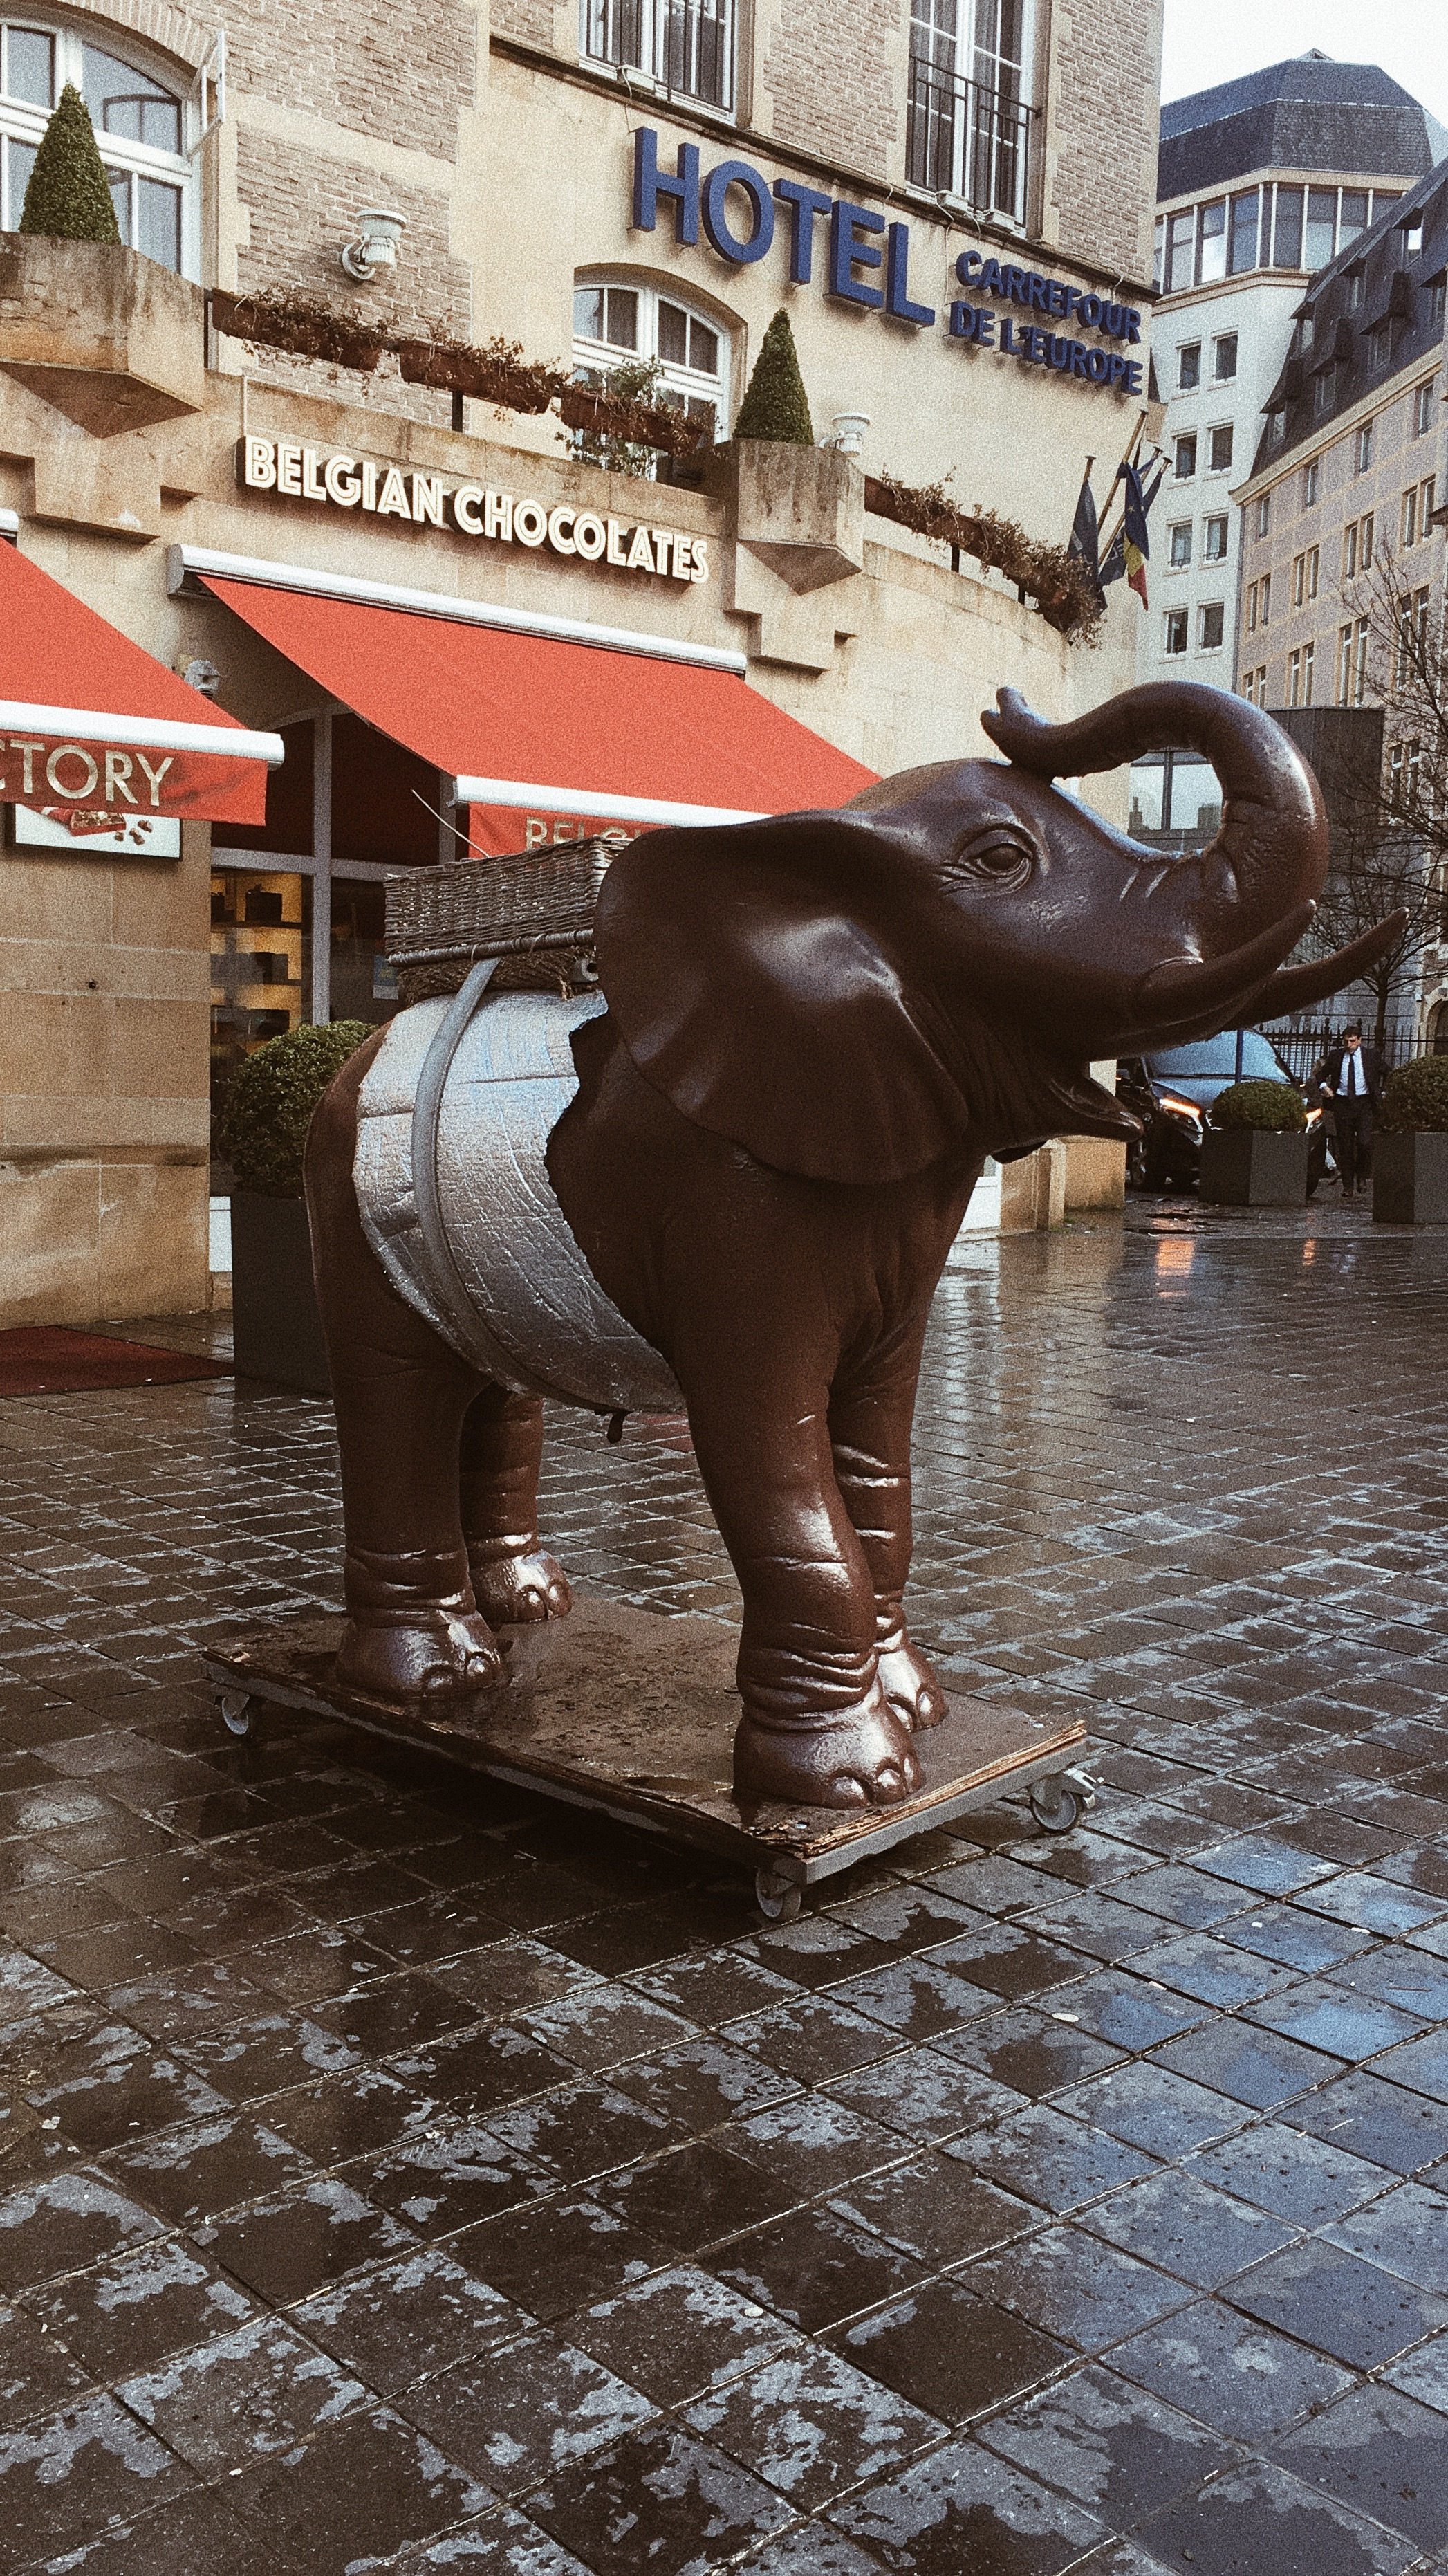 Elephant sculpture in the centre of Brussels.